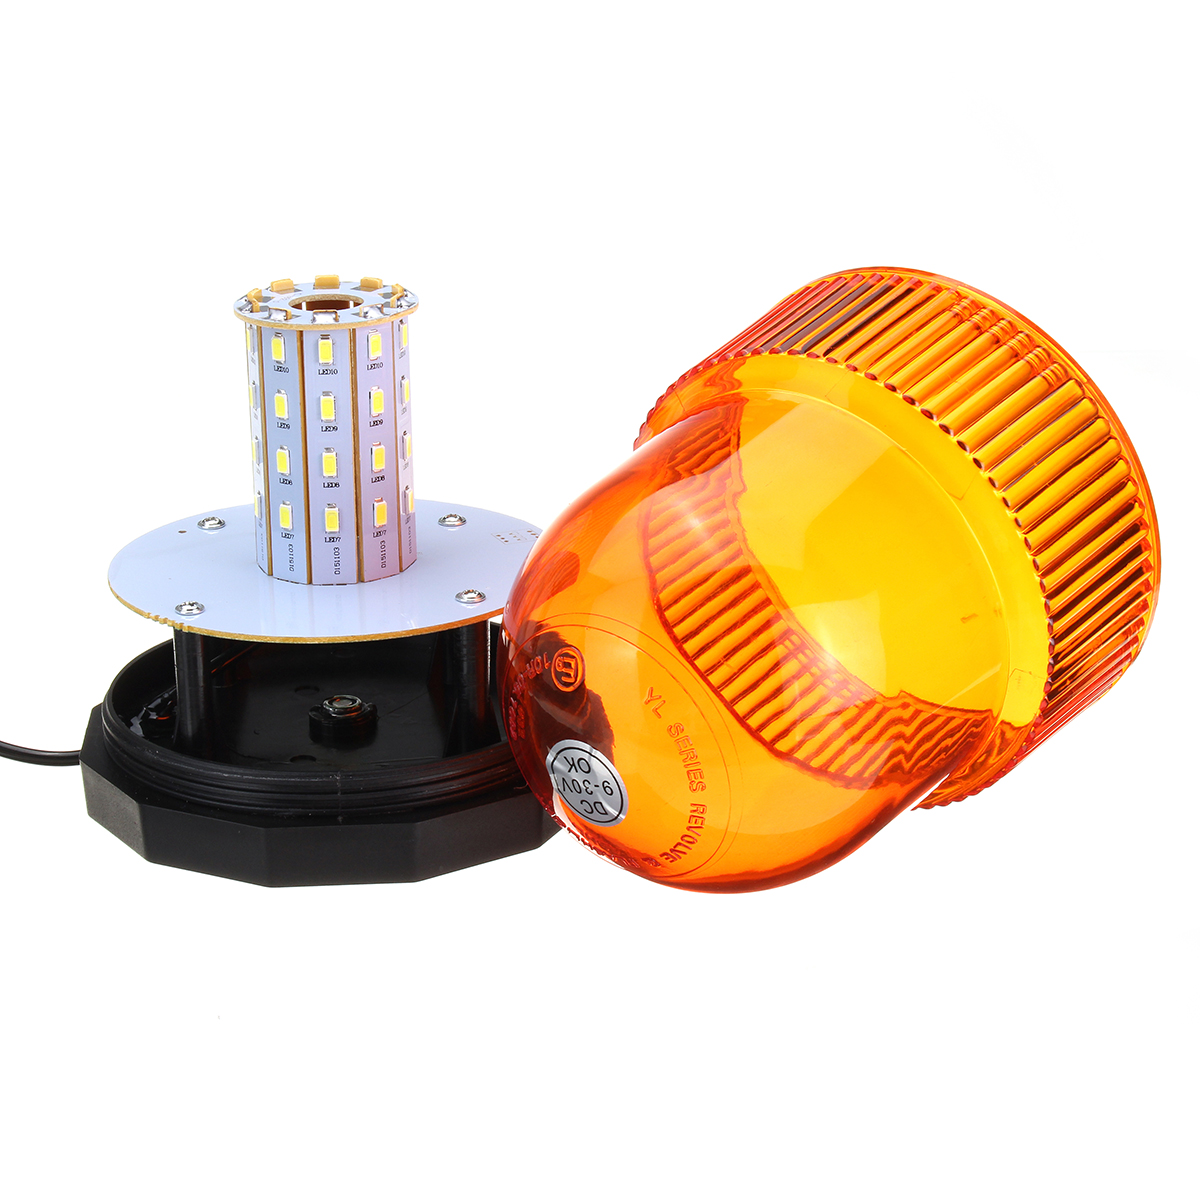 Magnetic Mounting 12V 40 LED Flash Beacon Warning Signal Light For Car Van Truck Tractor Motorcycle